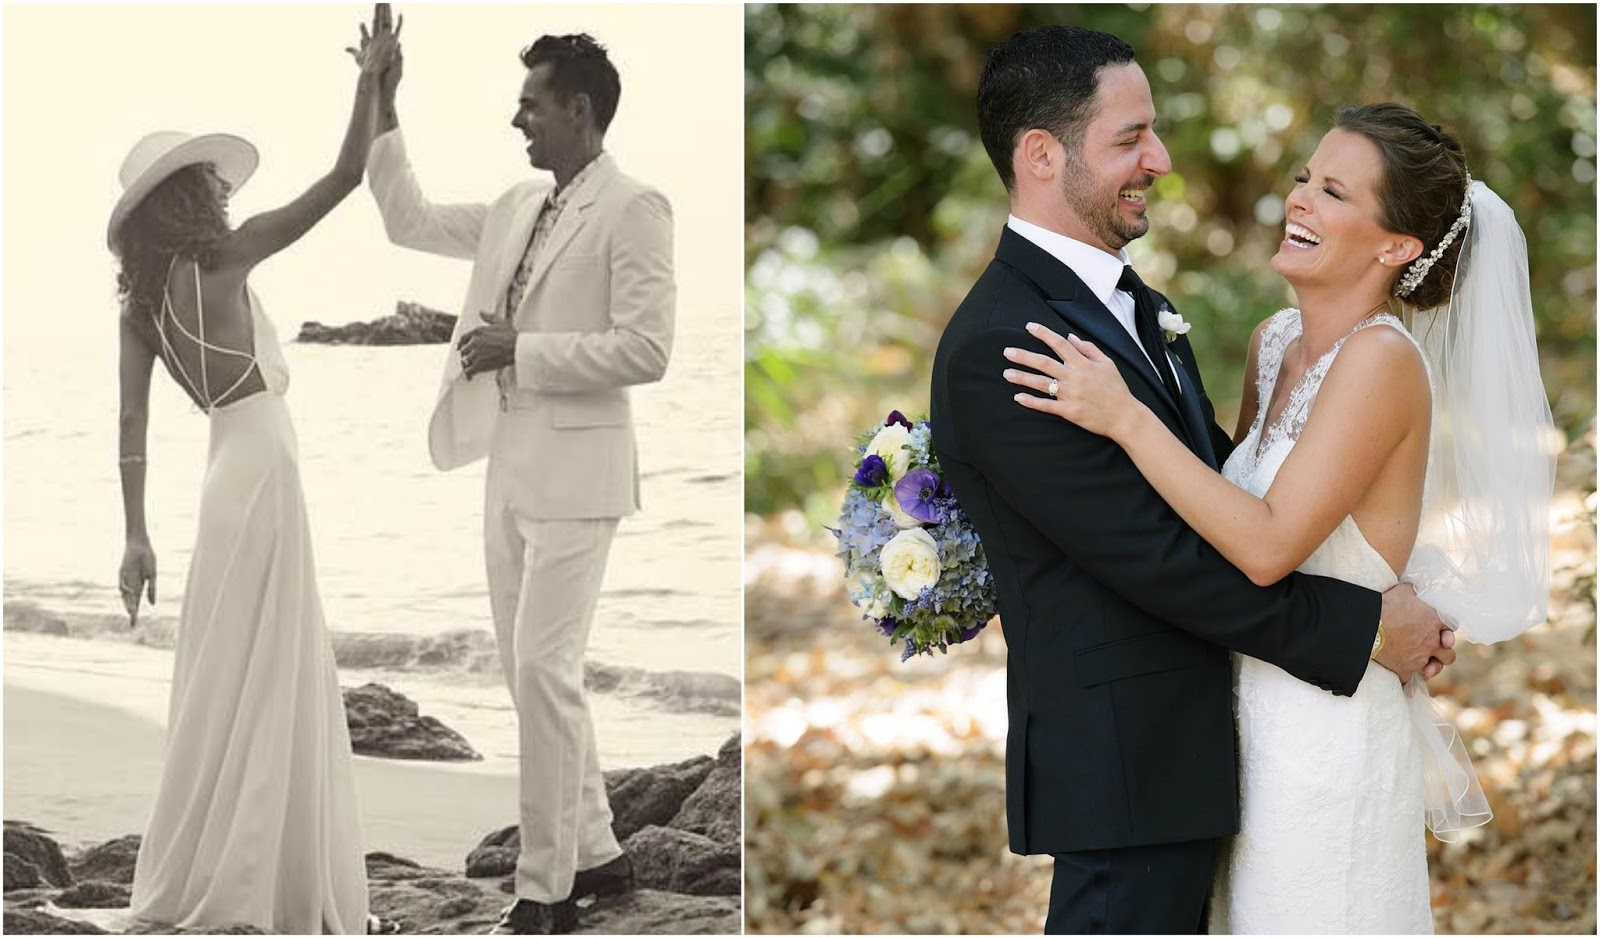 Y&R Stars and Their Real-Life Wedding Photos! | Soap Opera News